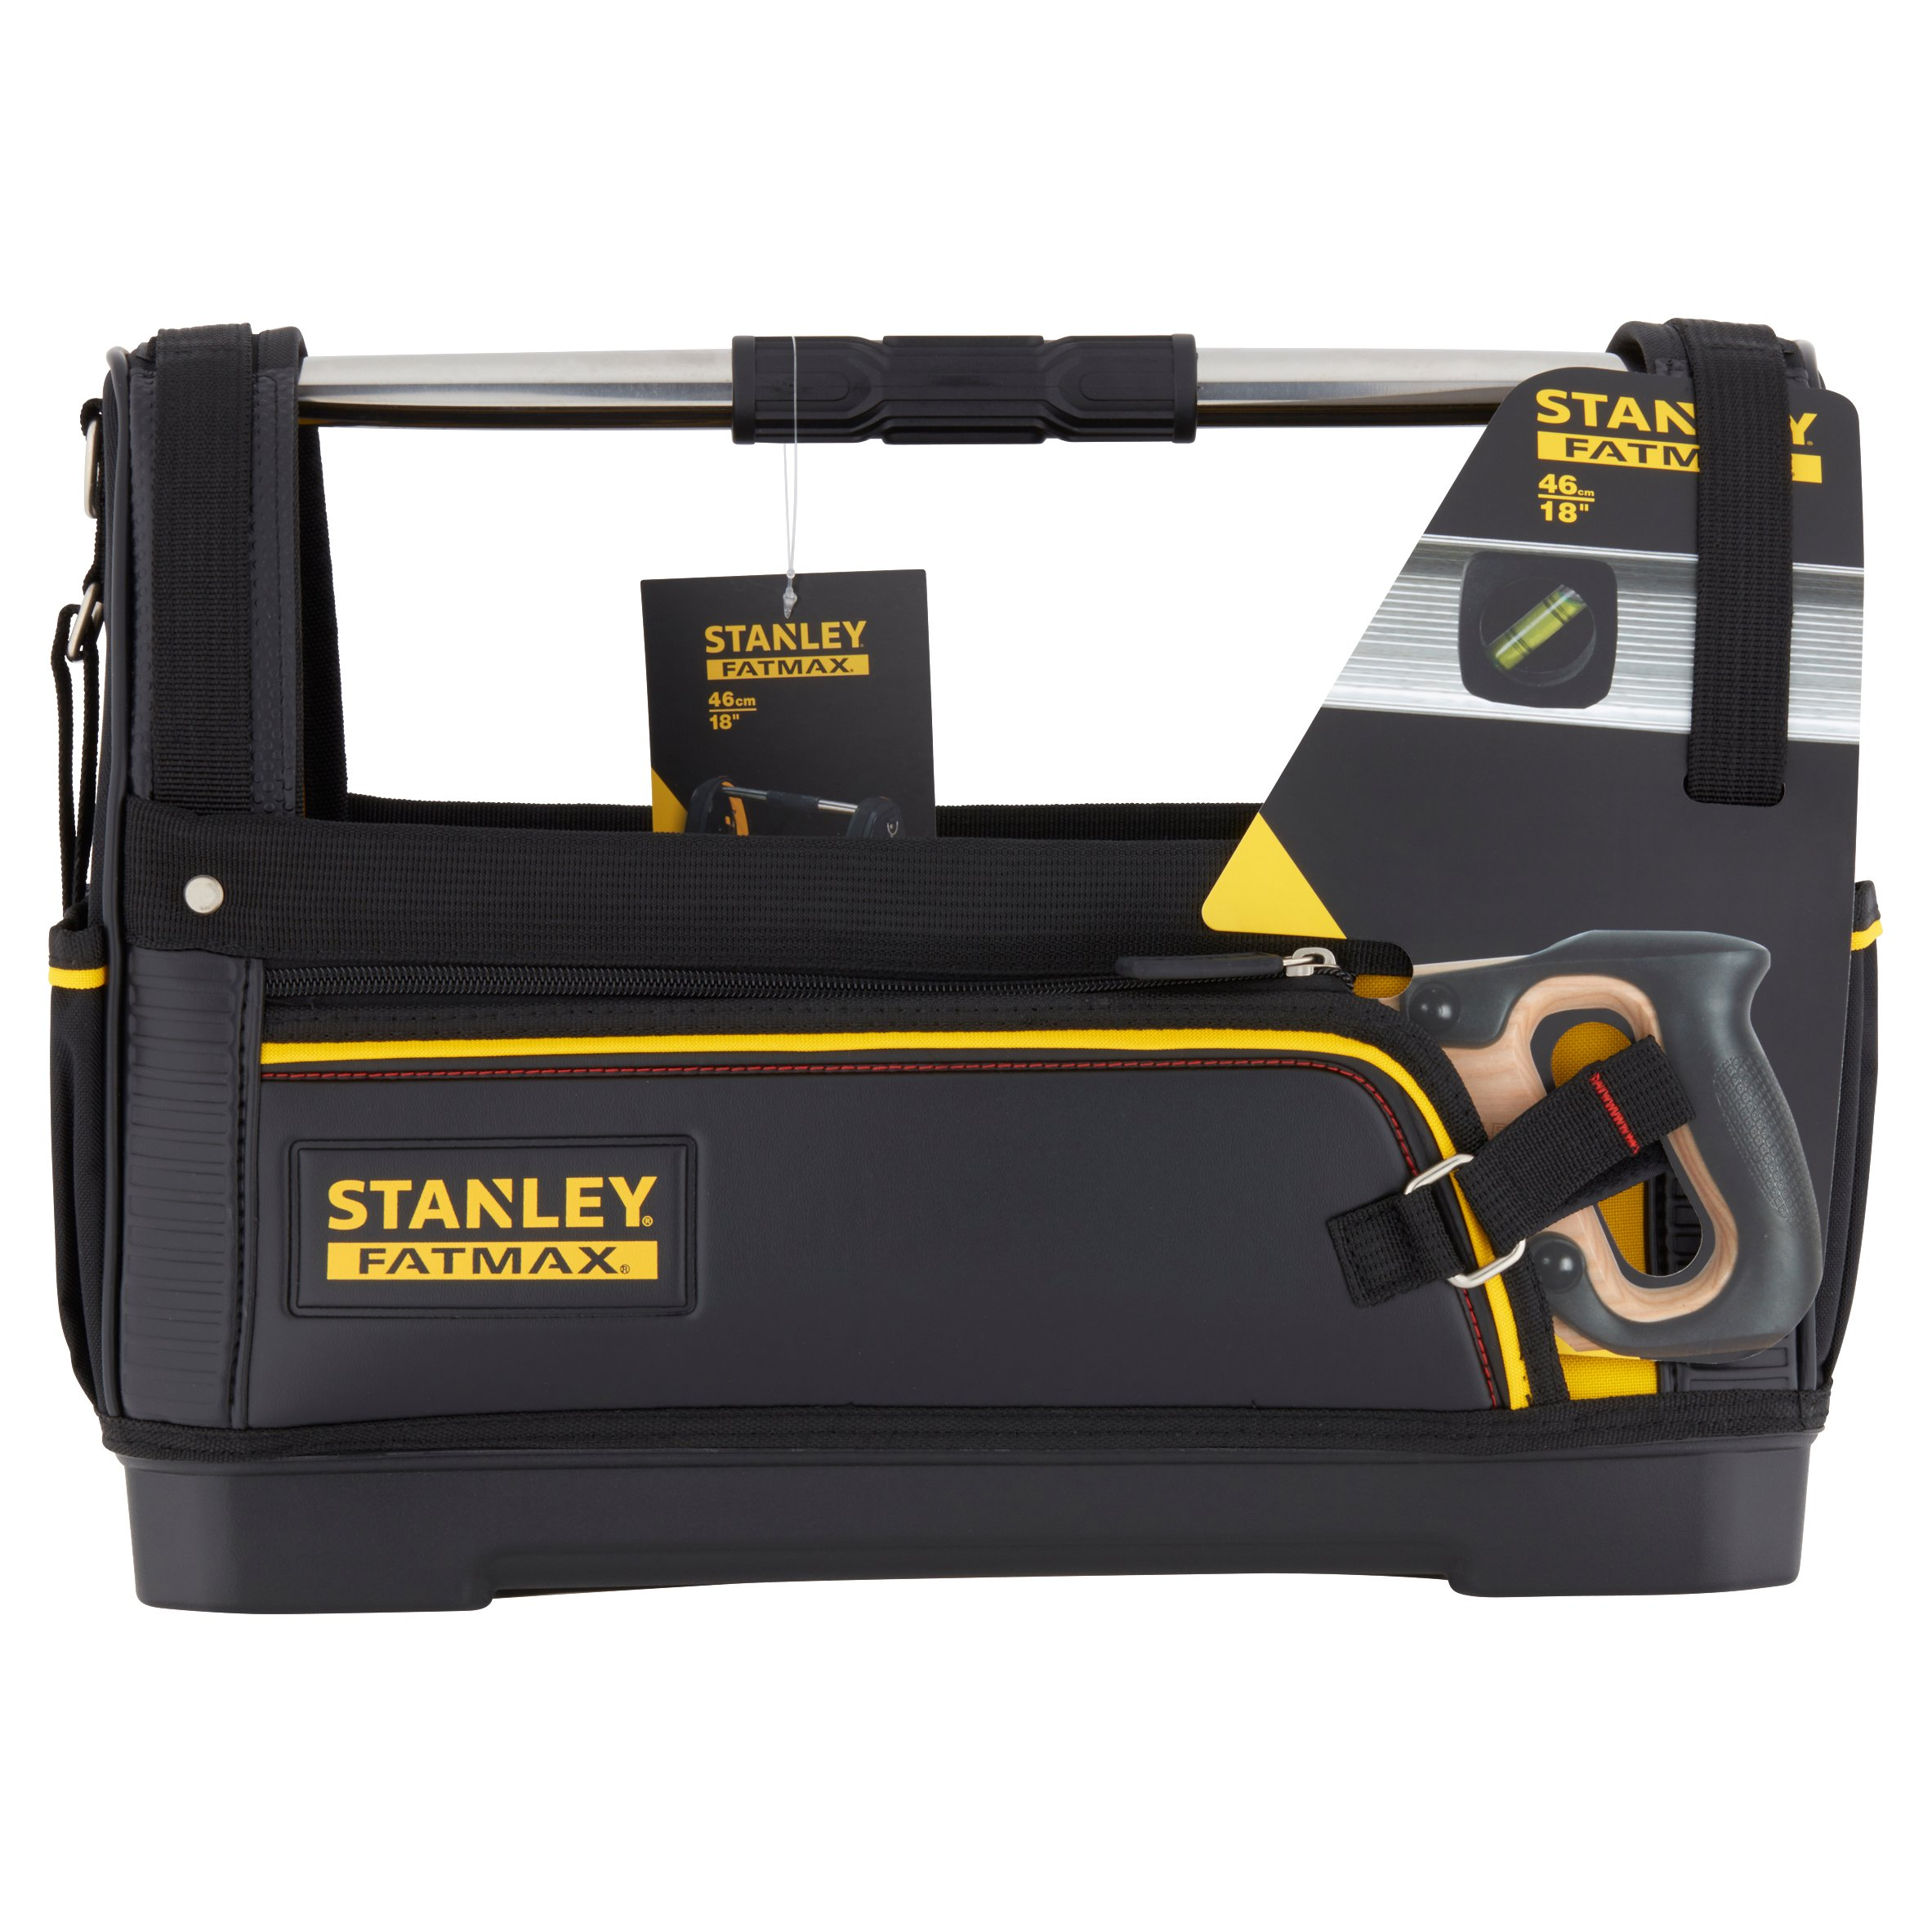 Stanley Fatmax Tool Bag by Stanley Black & Decker